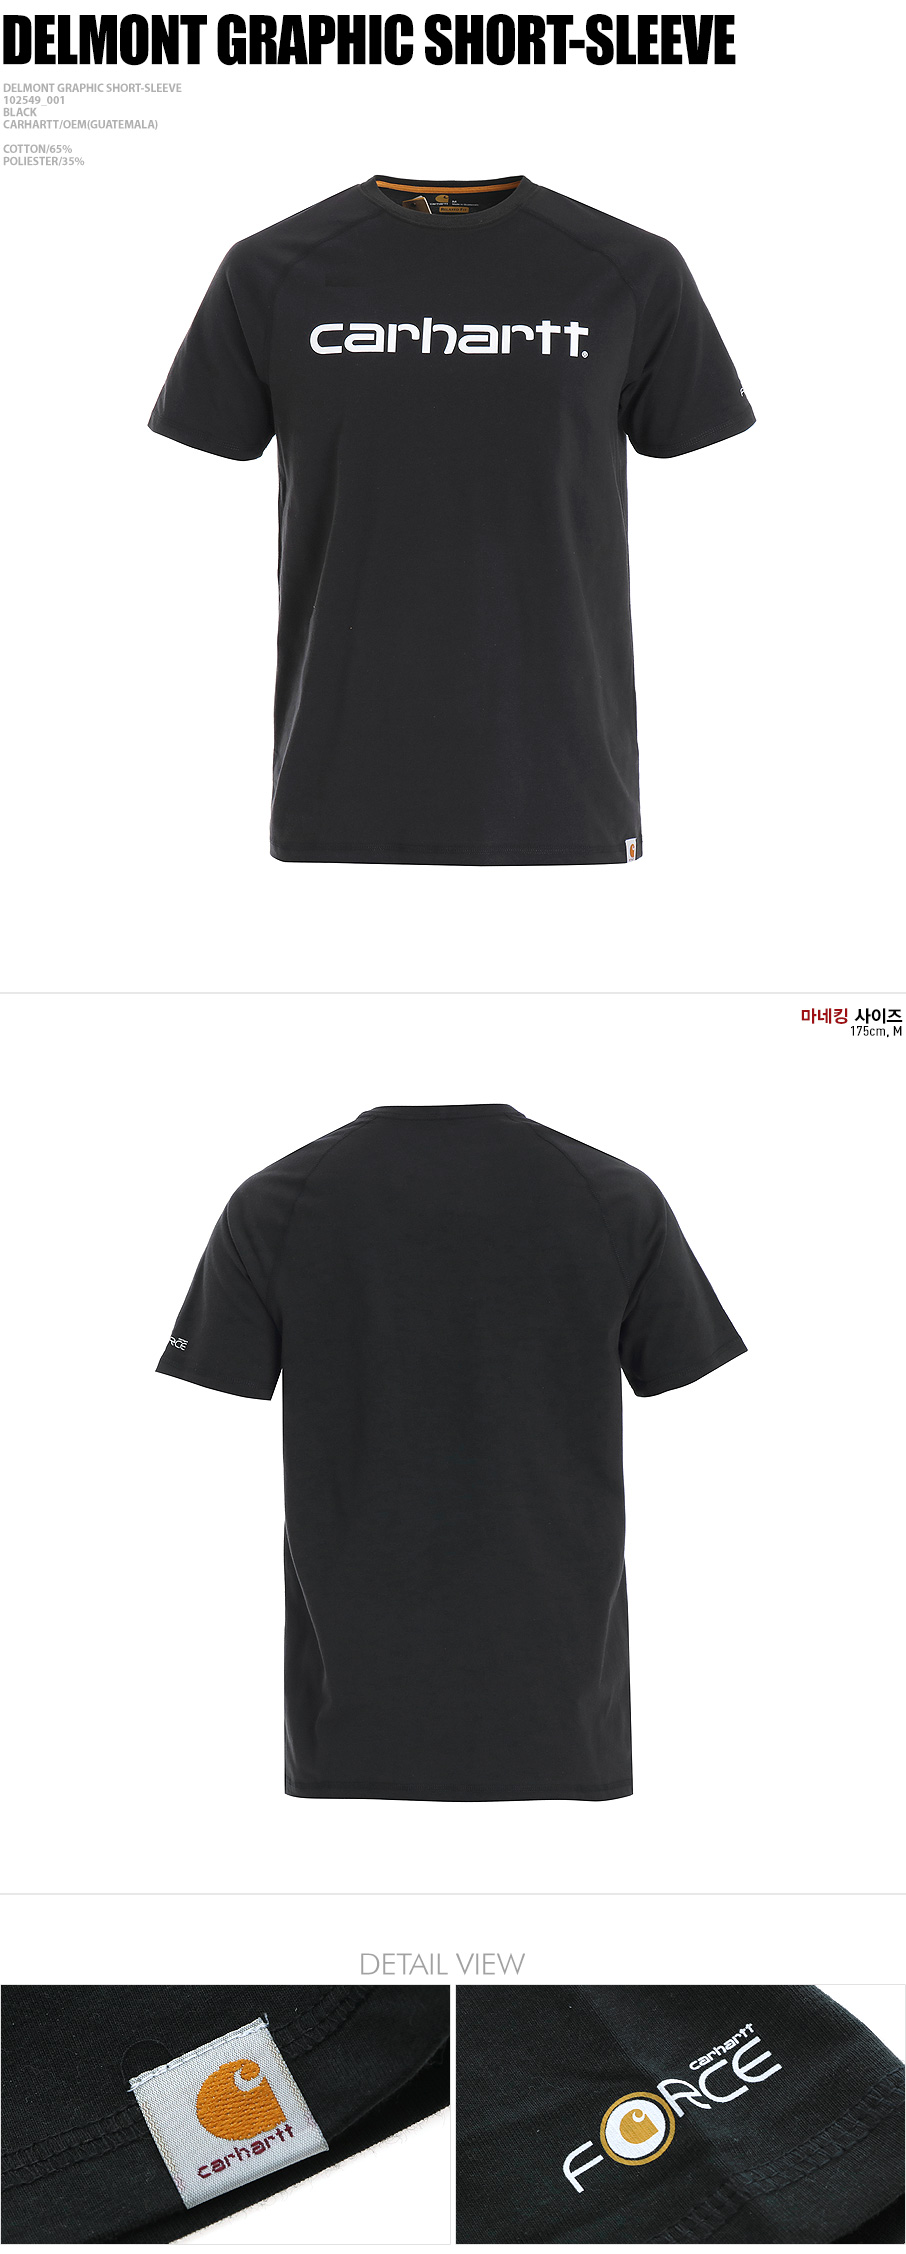 칼하트 델몬트 그래픽 반팔티 블랙 (Carhartt Force Cotton Delmont Graphic Short-Sleeve T-Shirt Black)